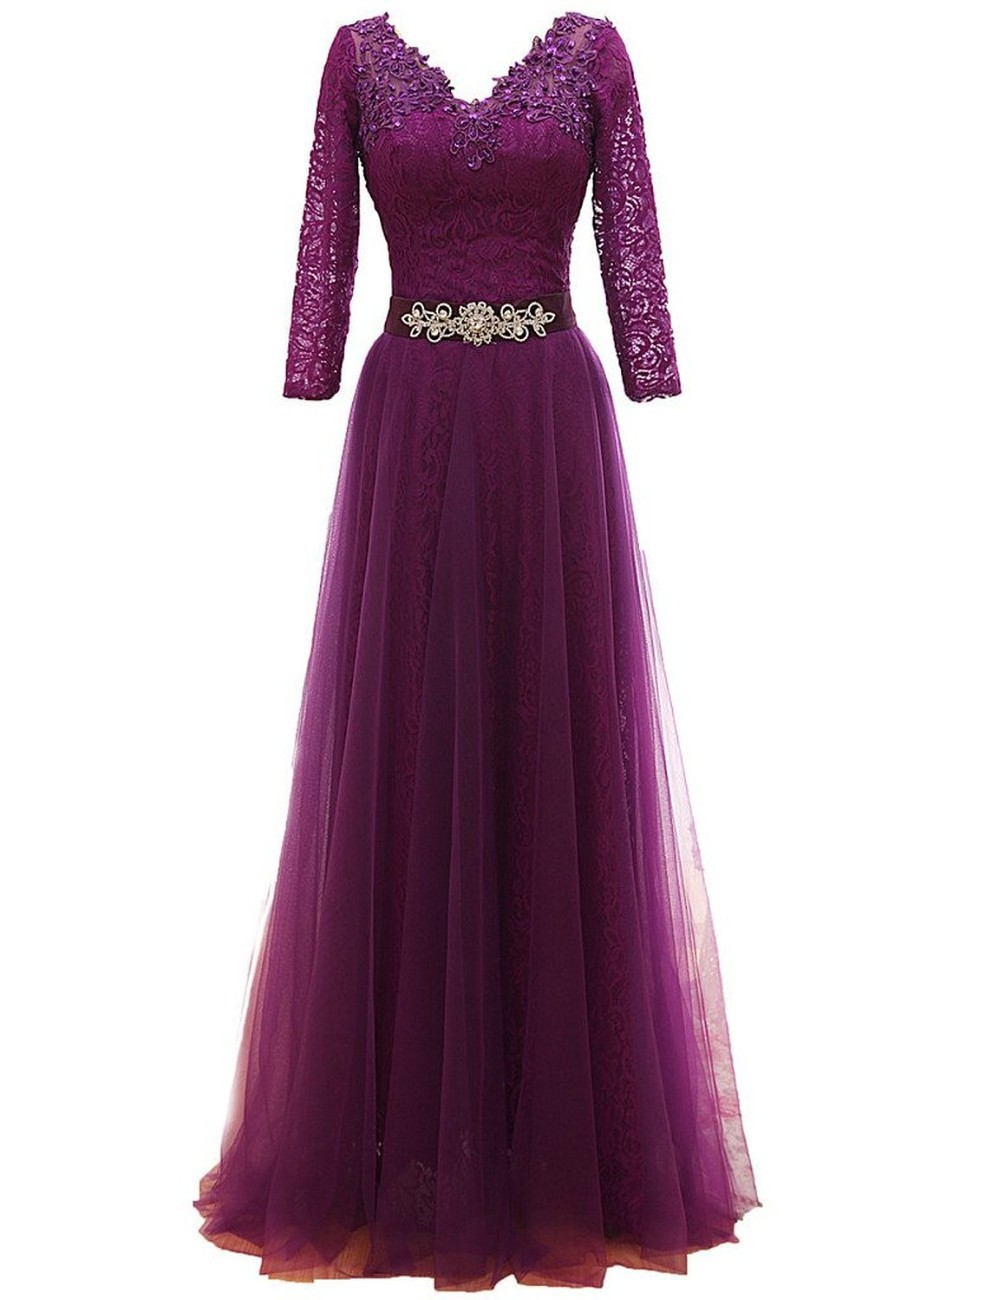 2016 New Arrival Purple Evening Dress Mother Of The Bride